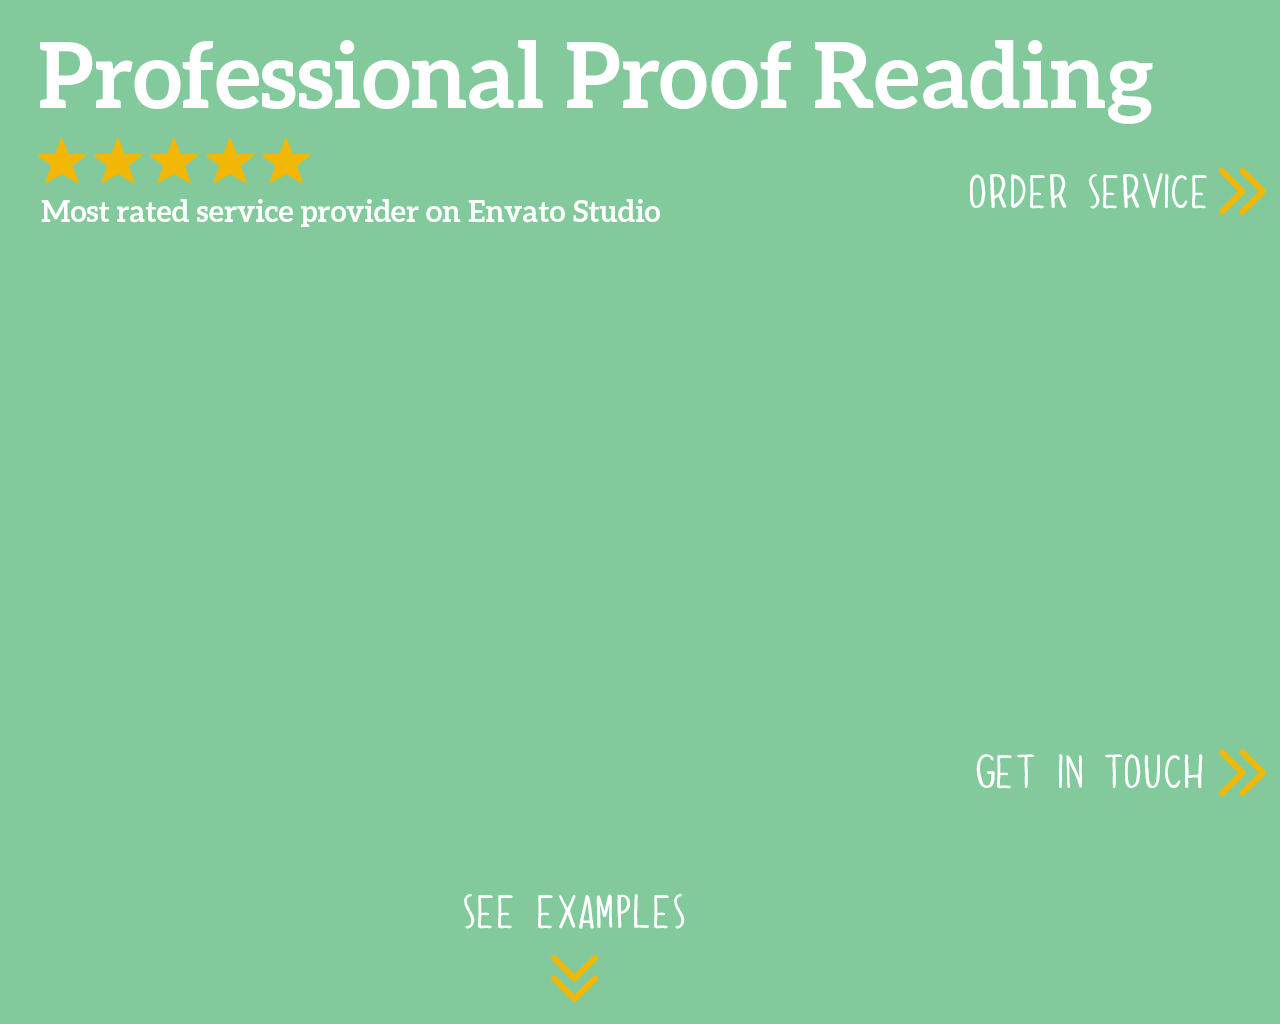 Professional Proof Reading 1200 - 5000 words by zlaws - 74974